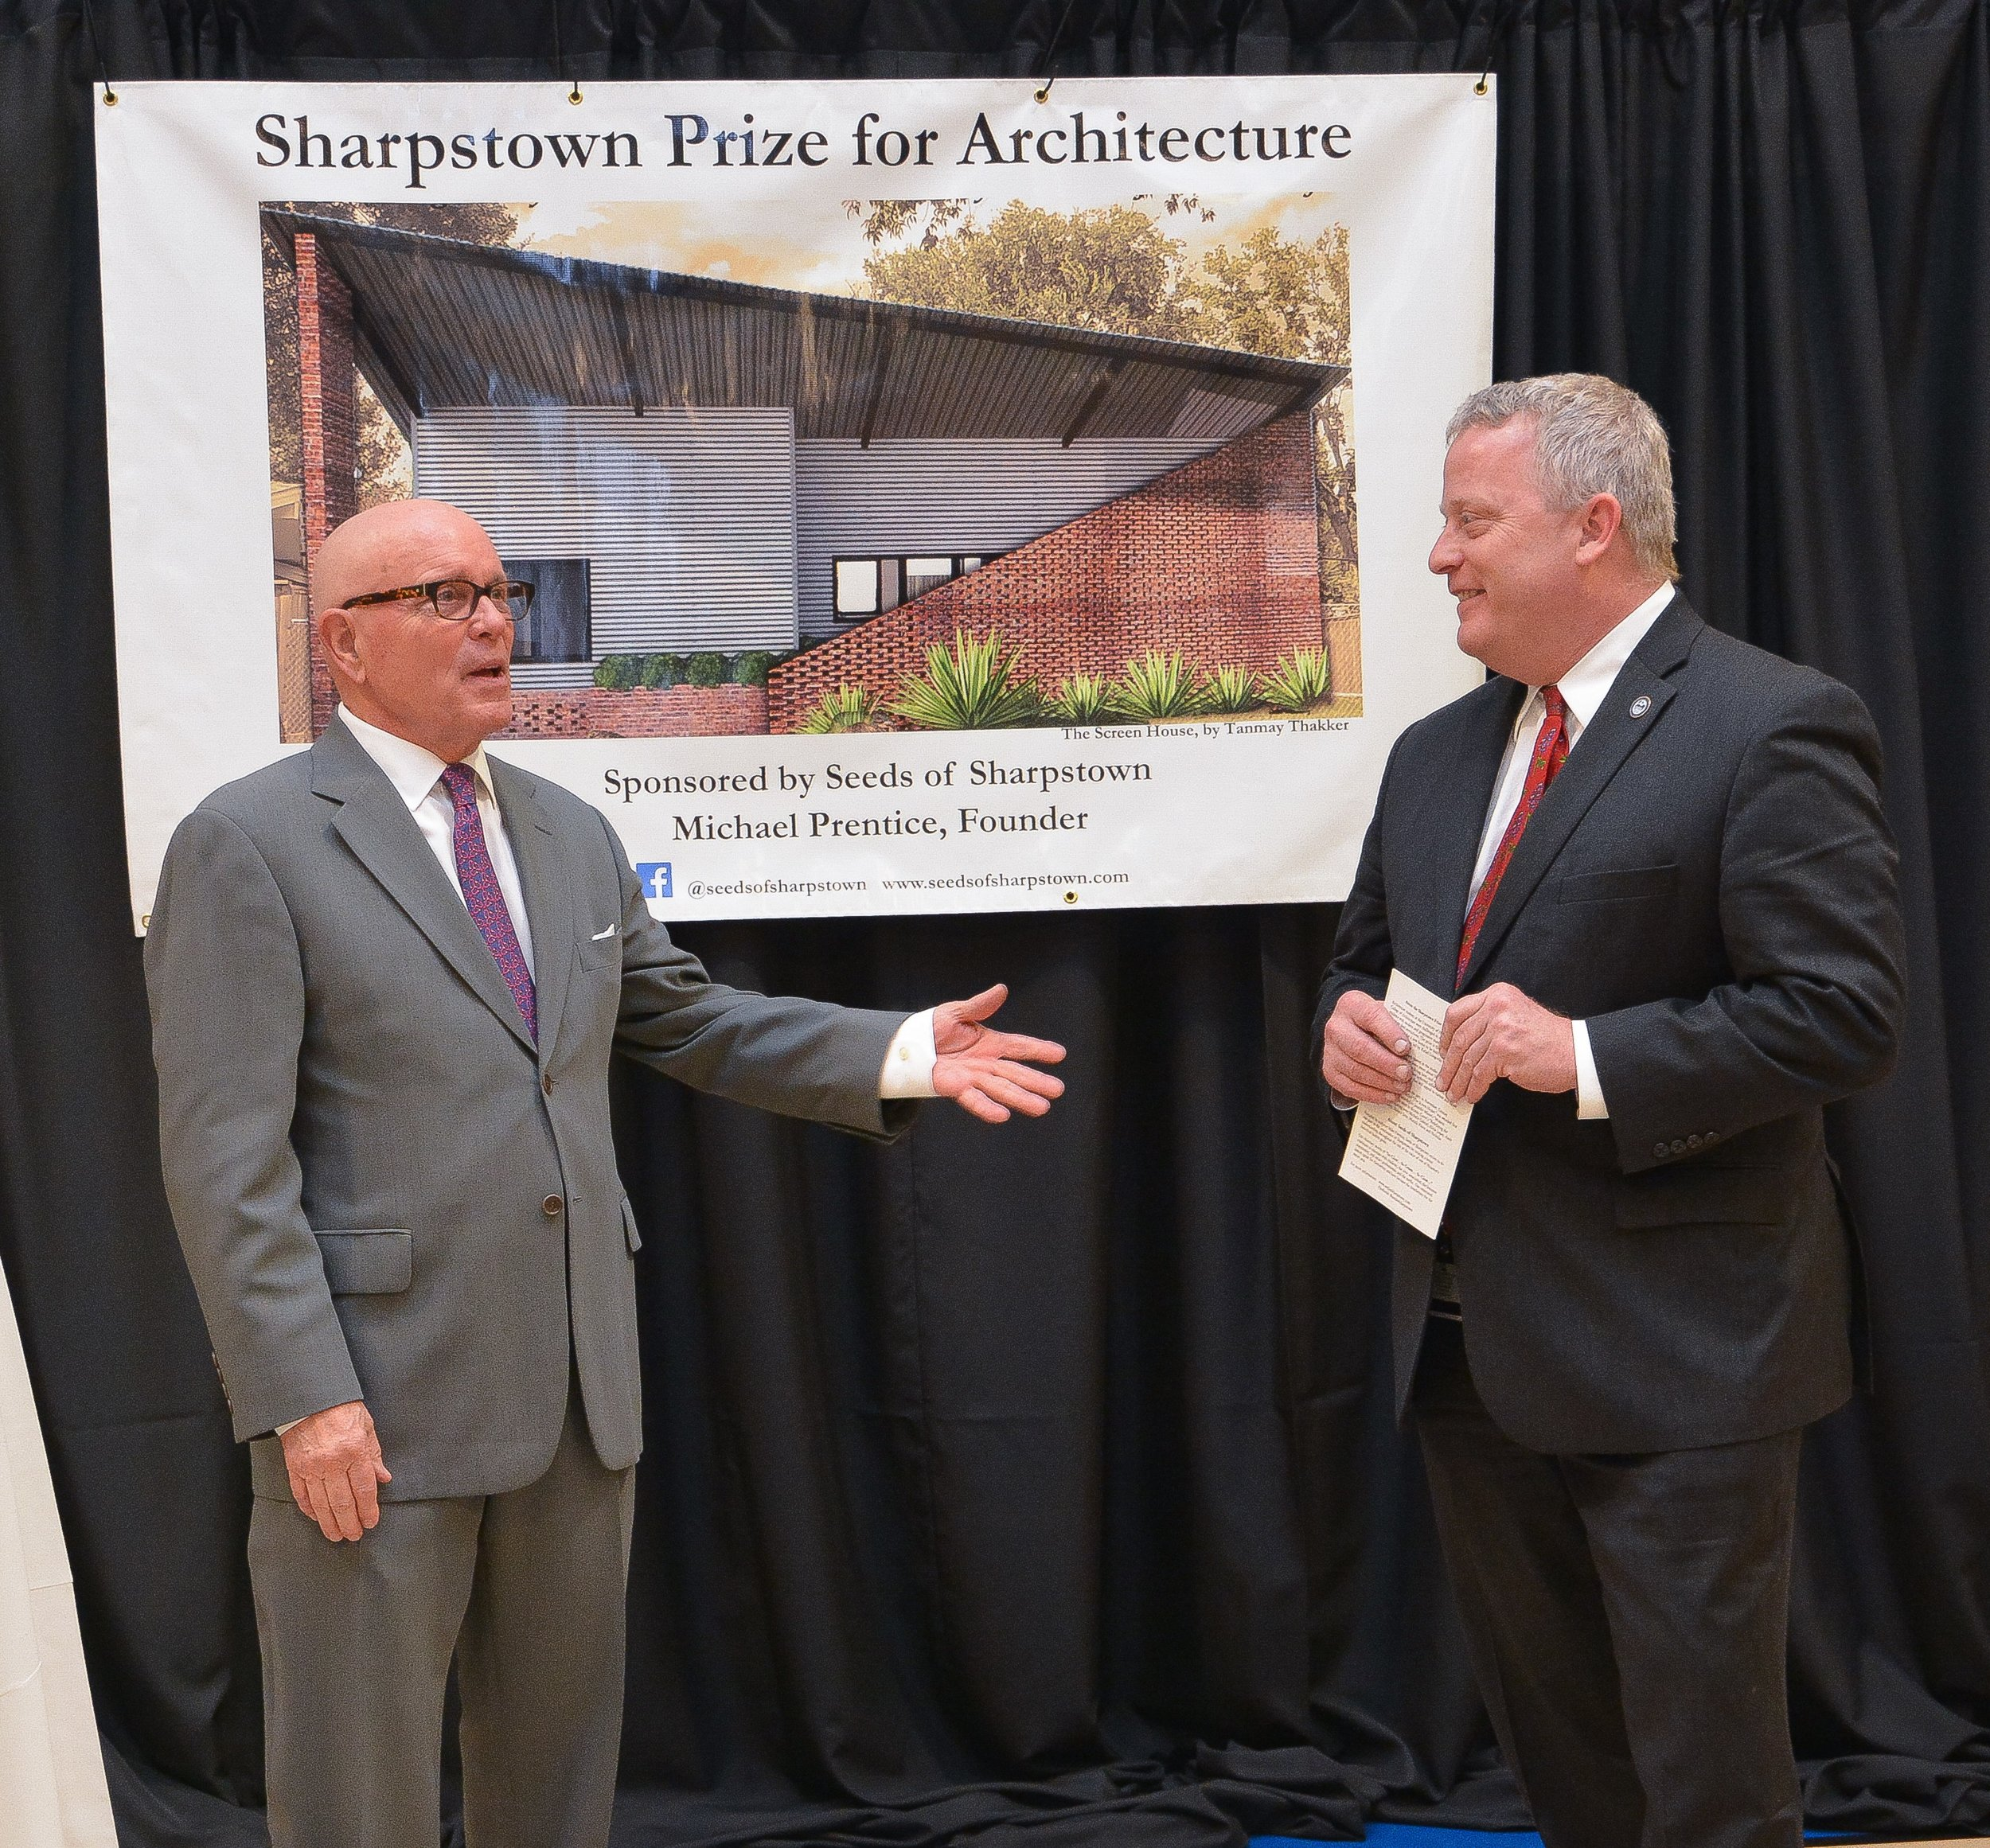 Michael Prentice is joined by Houston City Councilman David Robinson during remarks at the Sharpstown Prize for Architecture exhibition.